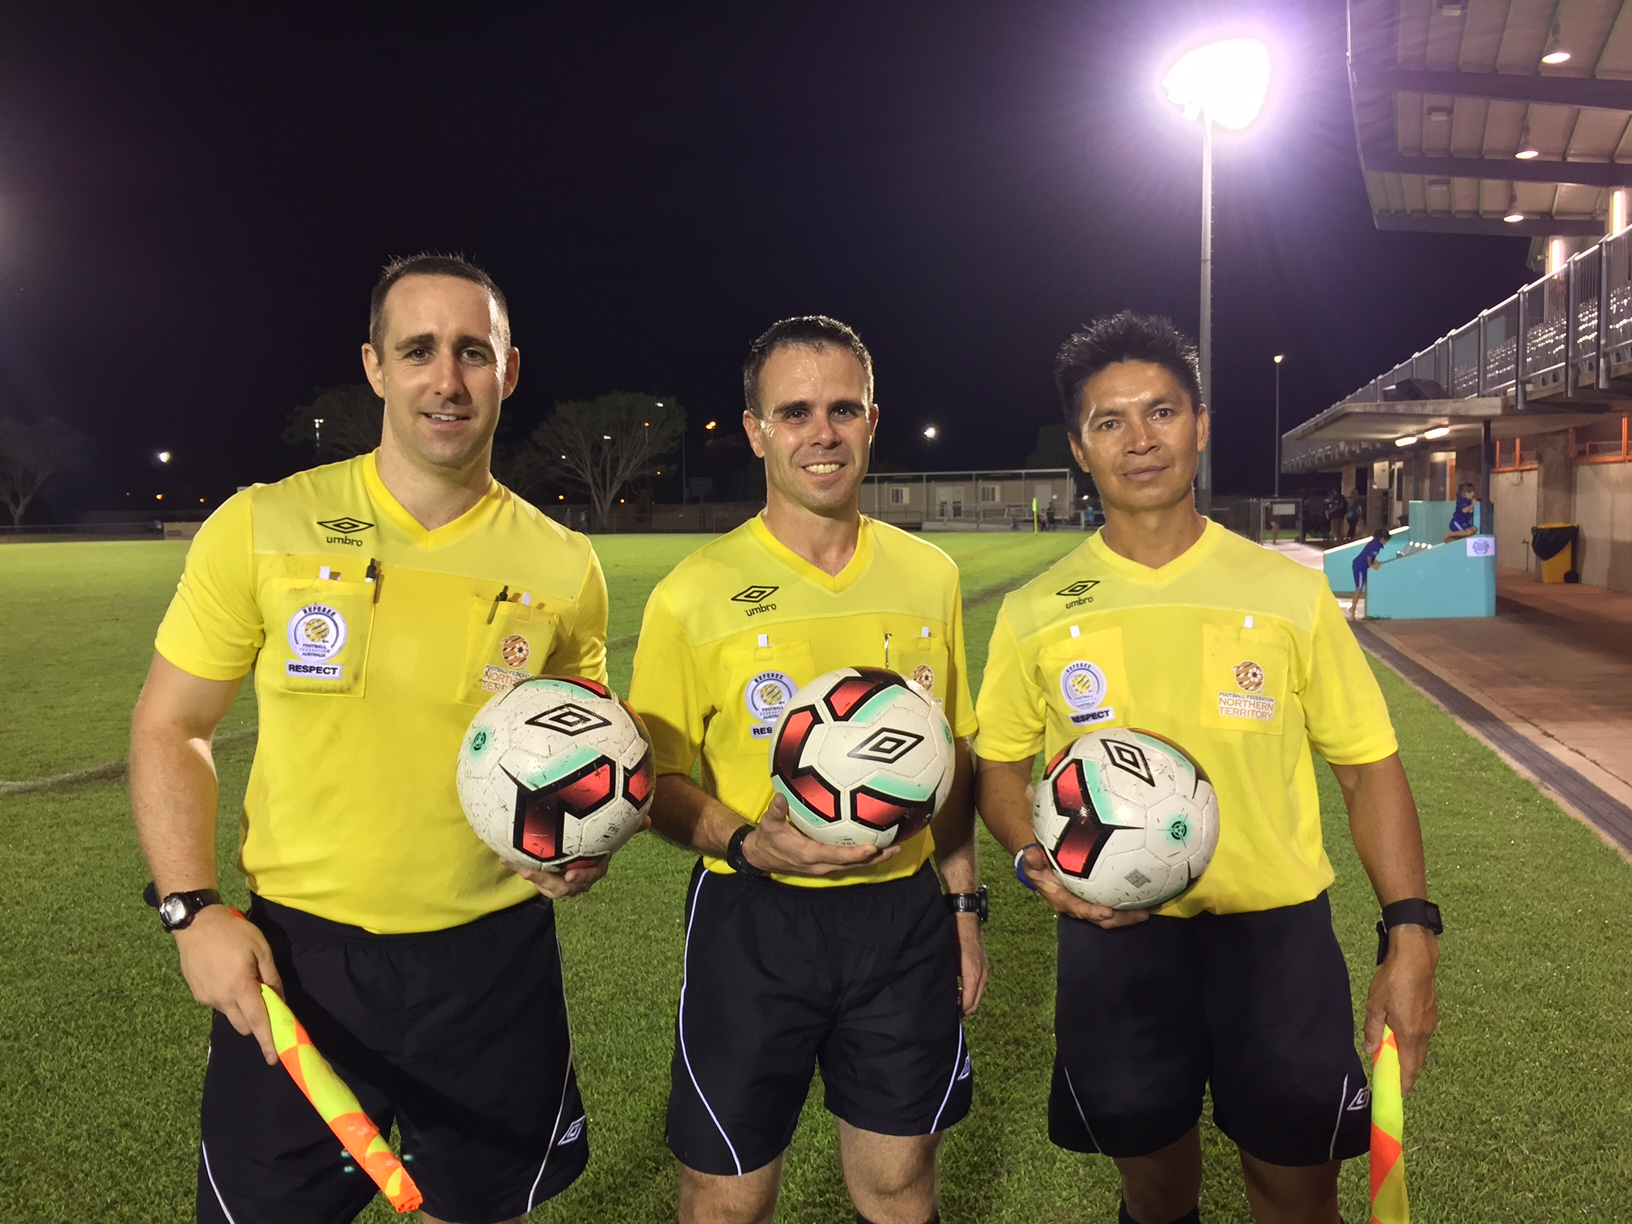 Russell Davis Usmc Is Our Us Soccer Referee In The Middle Russ Is A Marine Corps Navigator And Was In Australia For A Few Days And When He Had A Day